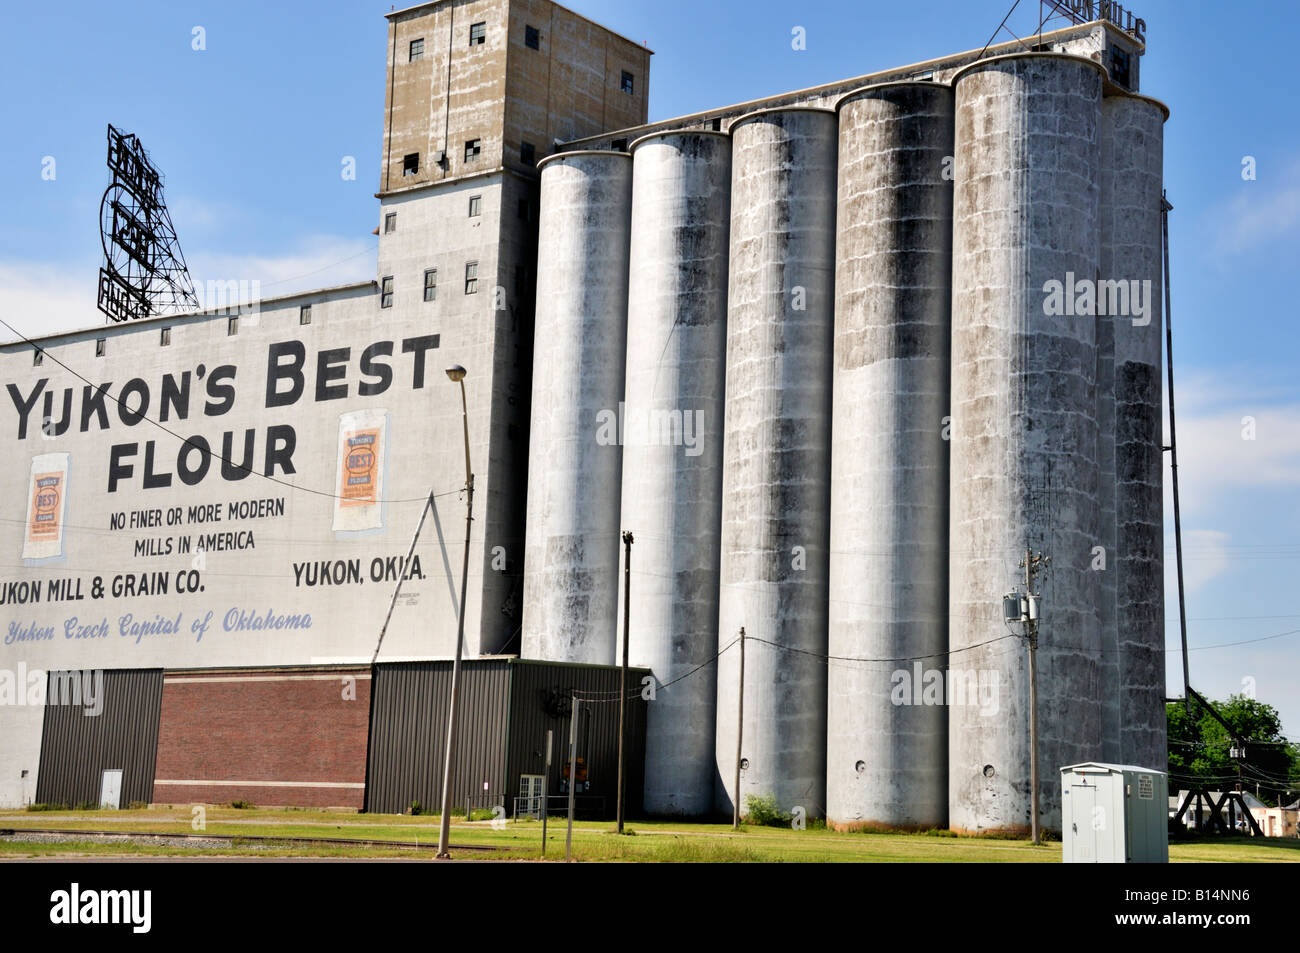 yukons-best-flour-a-mill-that-grinds-whe